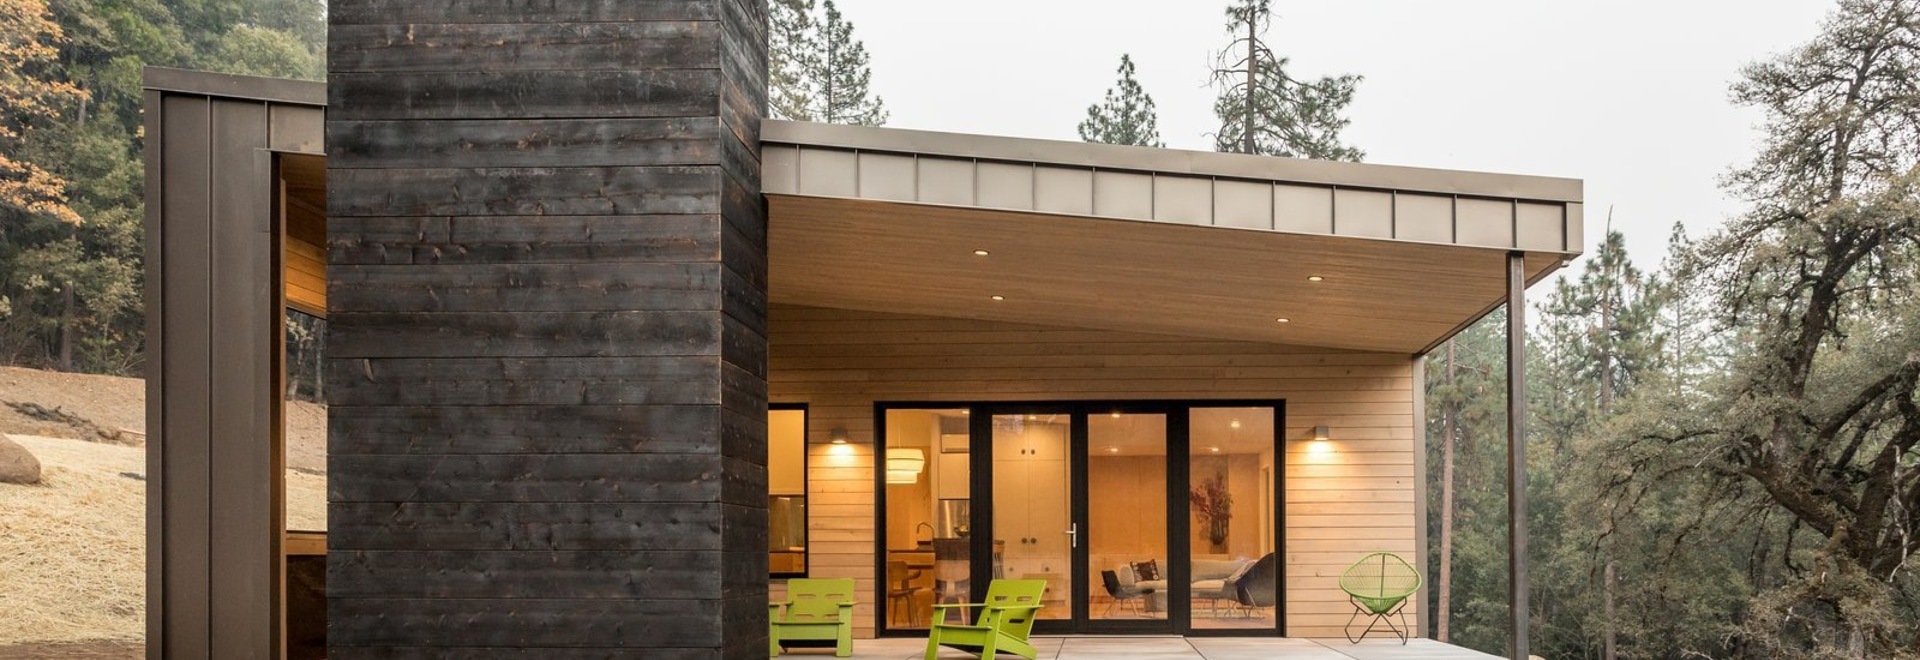 Mela Breen and David Good set out to build a zero-energy property that blended into its surroundings in the Sierra Nevada Mountains.